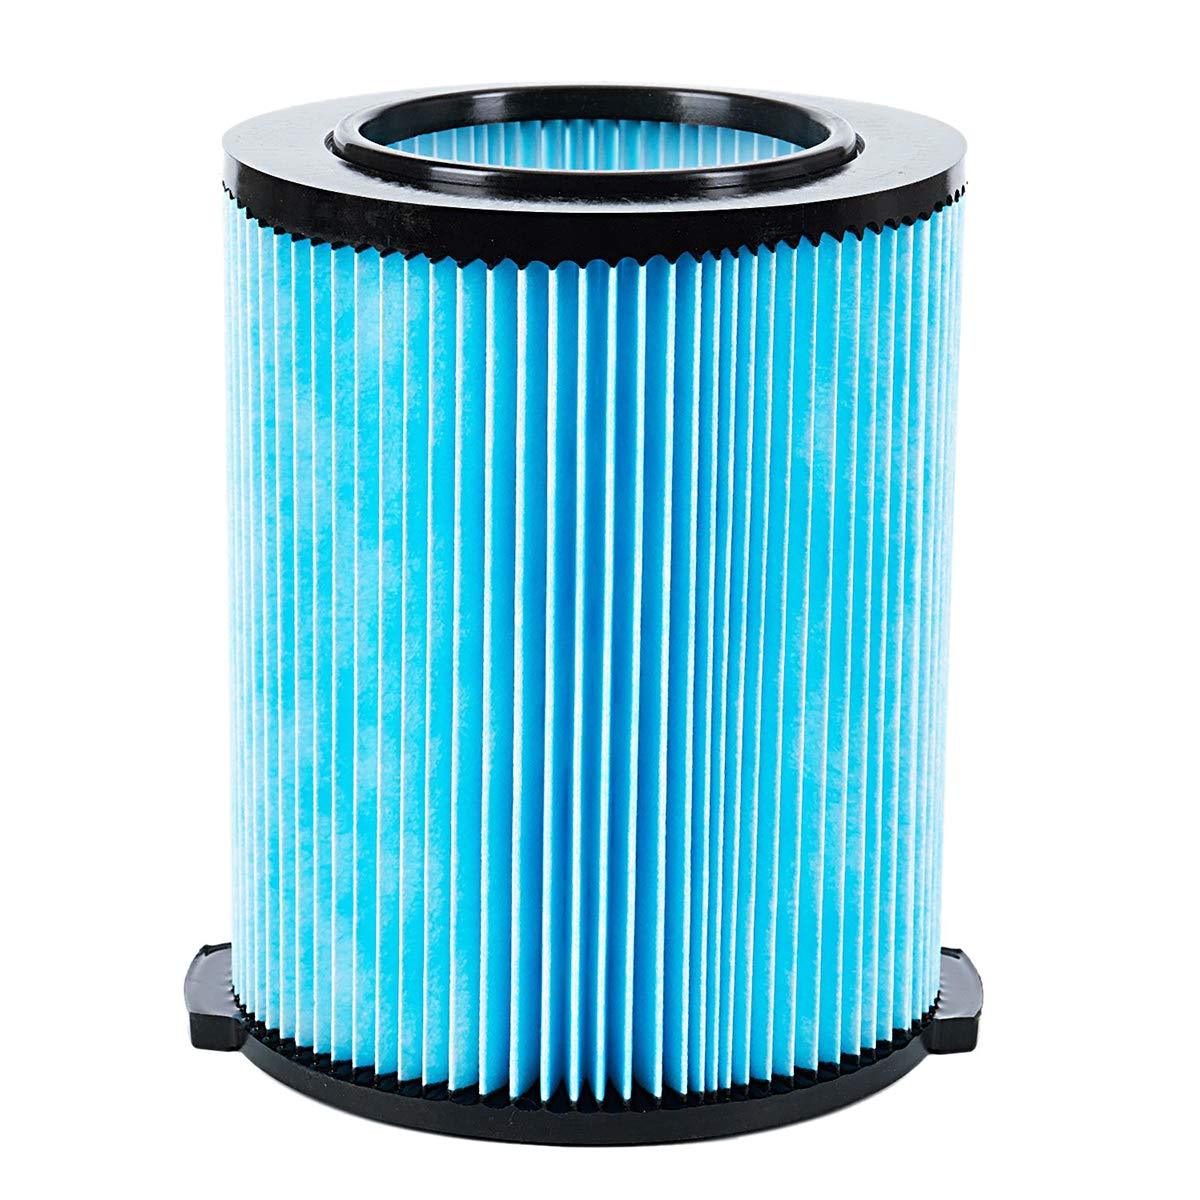 2TRIDENTS 3-Layer Fine Dust Filter for Ridgid VF5000 Vacuum Cleaner Reusable Washable Filter for Ridgid VF5000